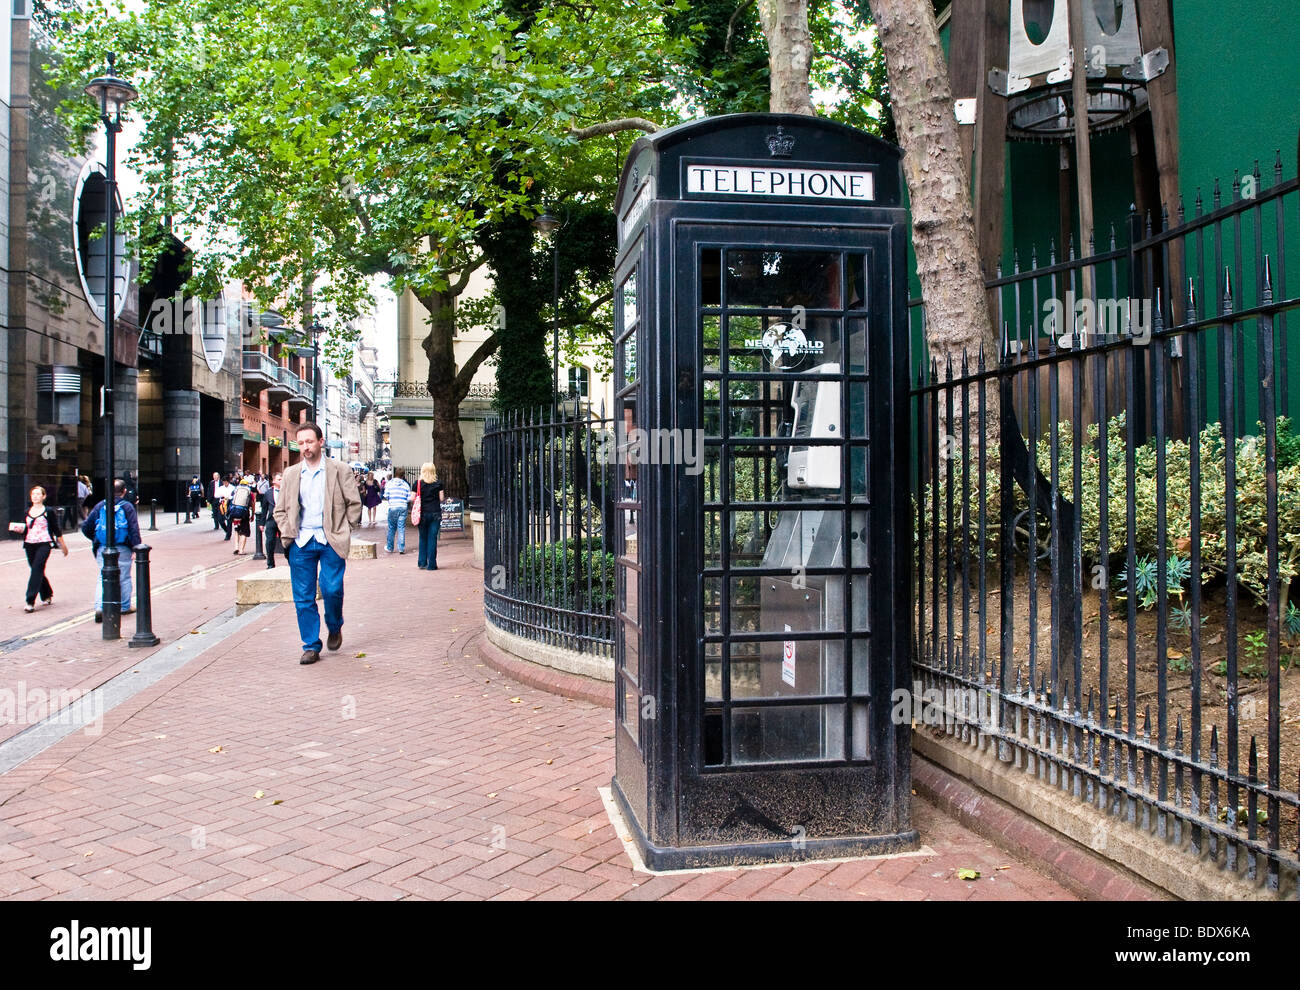 A black telephone box in the City Of Westminster London - Stock Image